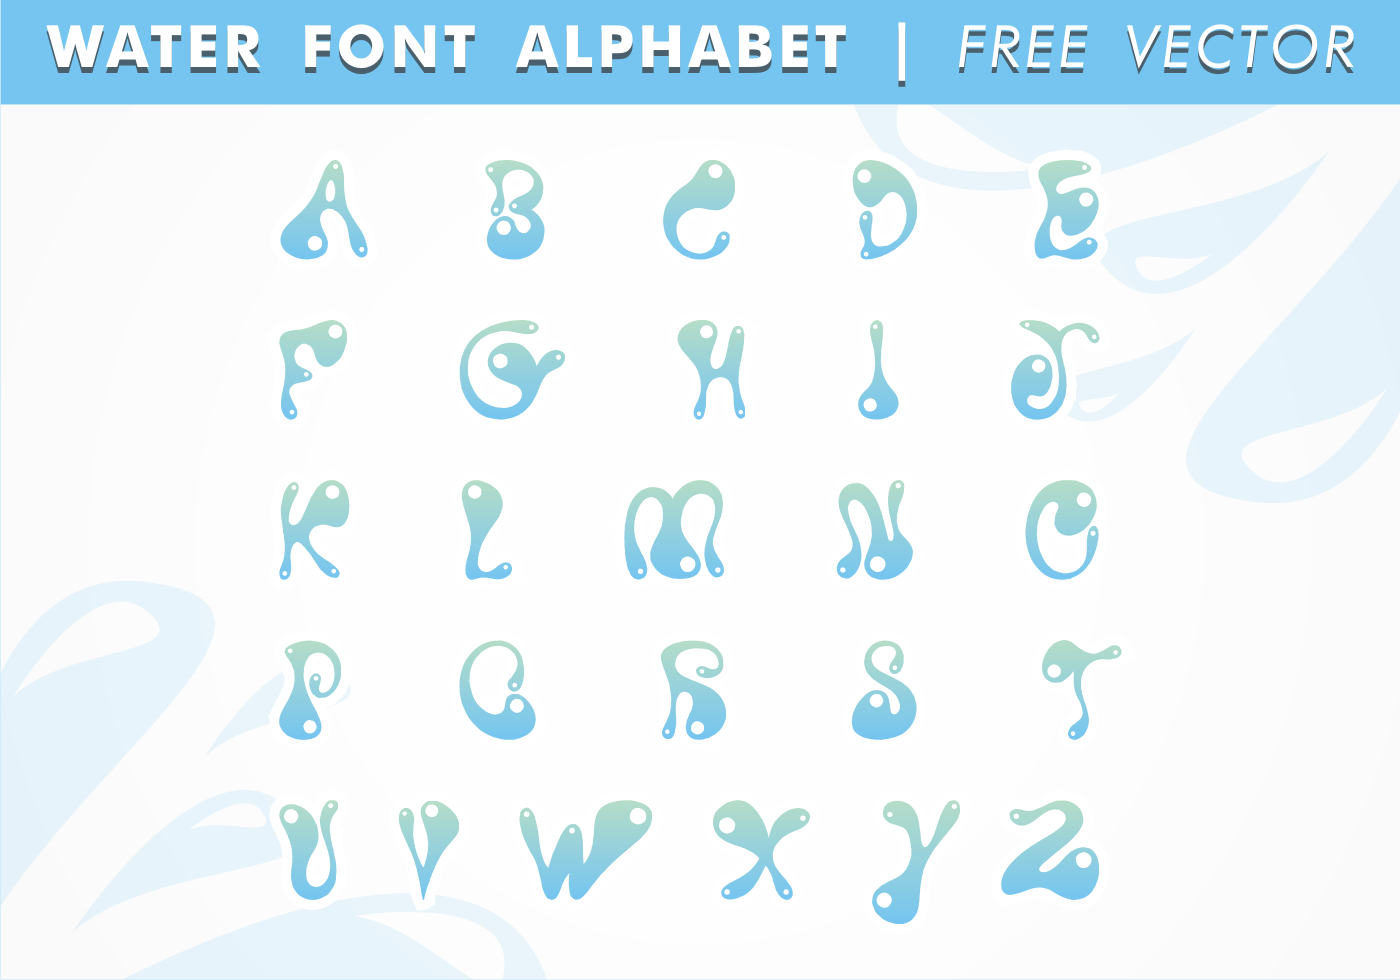 Free clipart water letters graphic freeuse stock Free clipart water letters - ClipartFest graphic freeuse stock